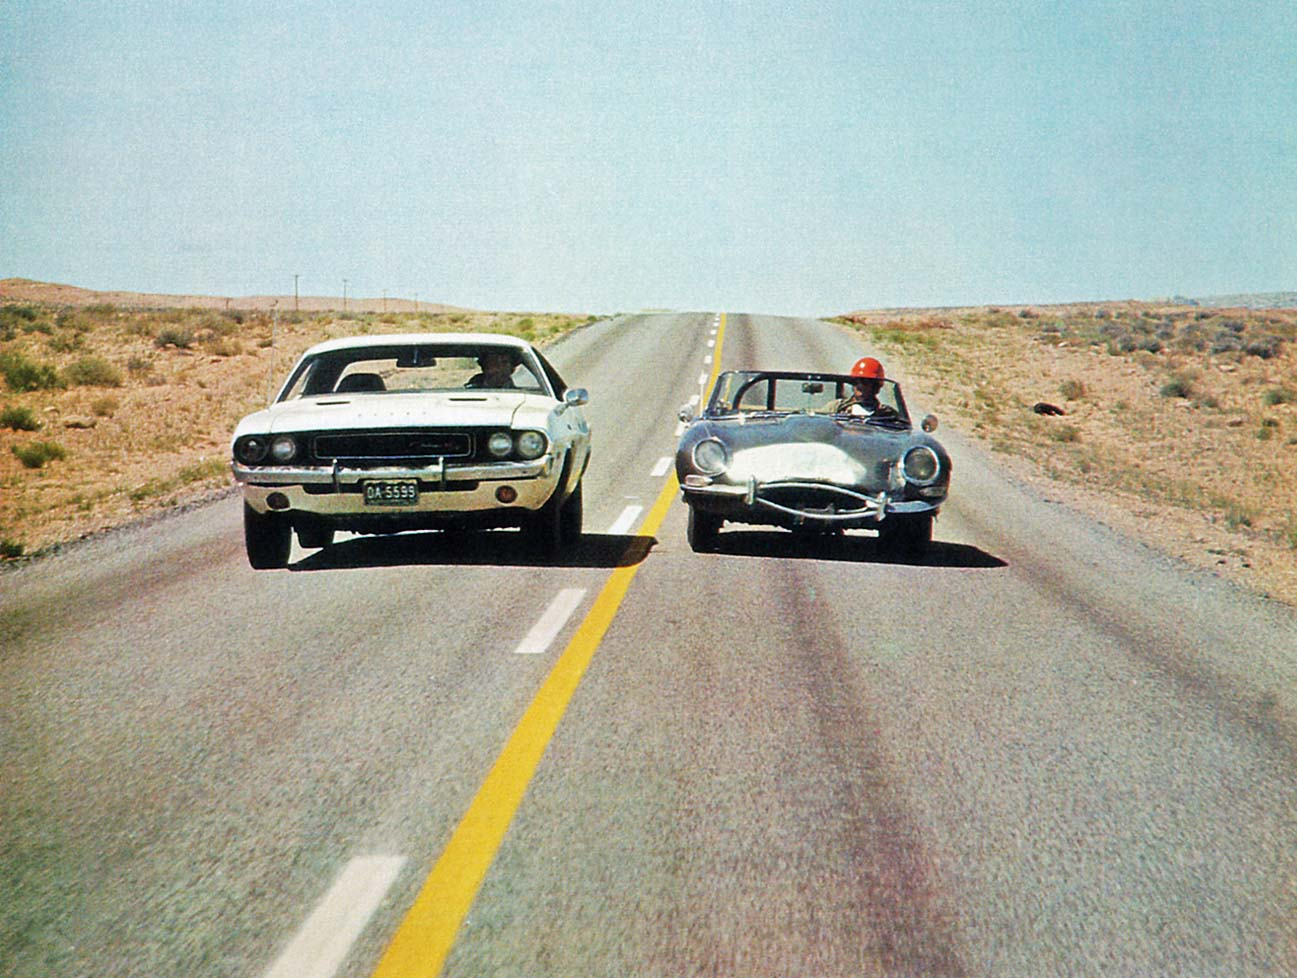 VANISHING POINT, Barry Newman (in car left), 1971, TM & Copyright © 20th Century Fox Film Corp./courtesy Everett Collection